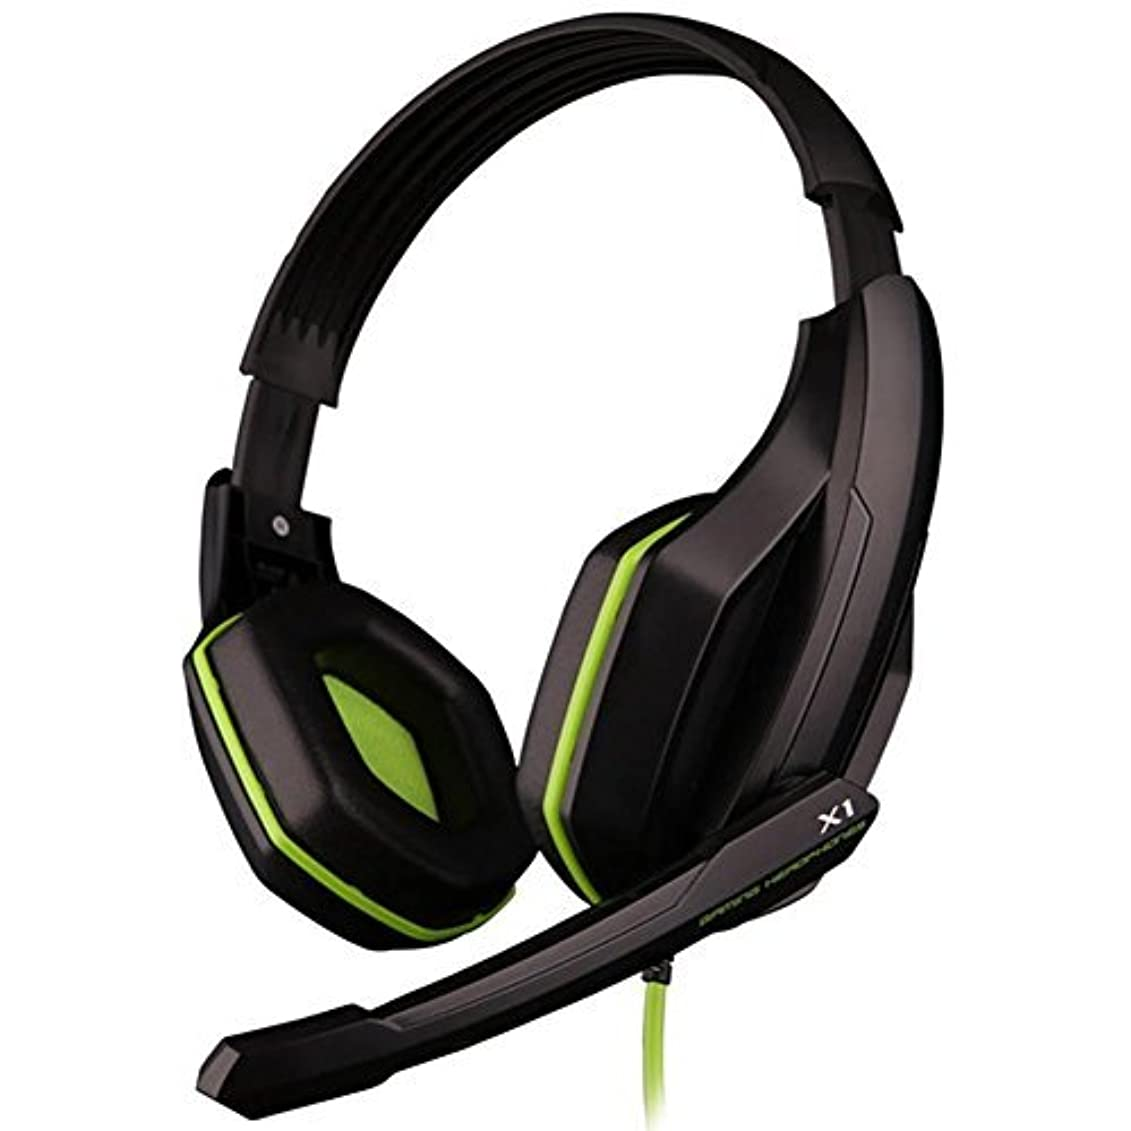 監督する無限スロットGranVela? X1 Gaming Headset Wired Stereo Over-Ear Headphones with Microphone and Volume Control PU Ear-pad for PC, Notebook, Mac (Green) [並行輸入品]